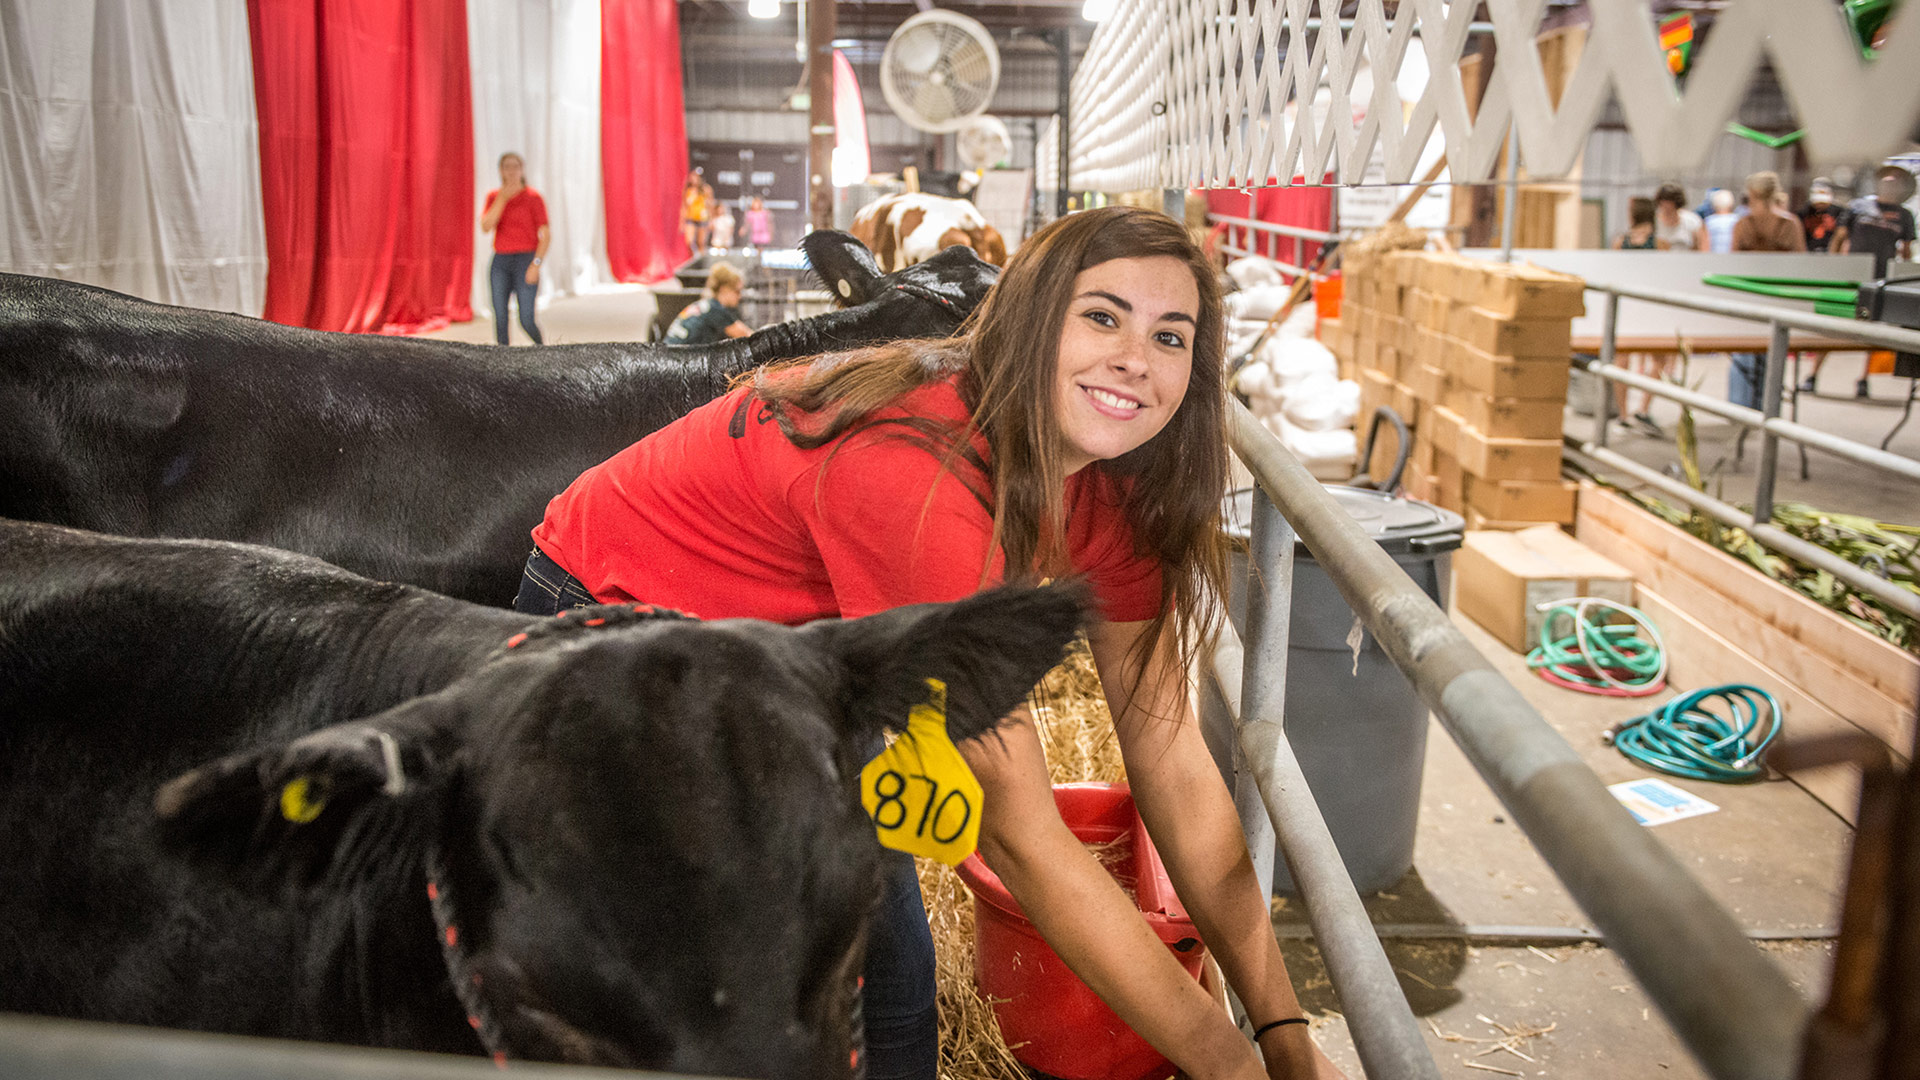 Agriculture Student with UMD Cows